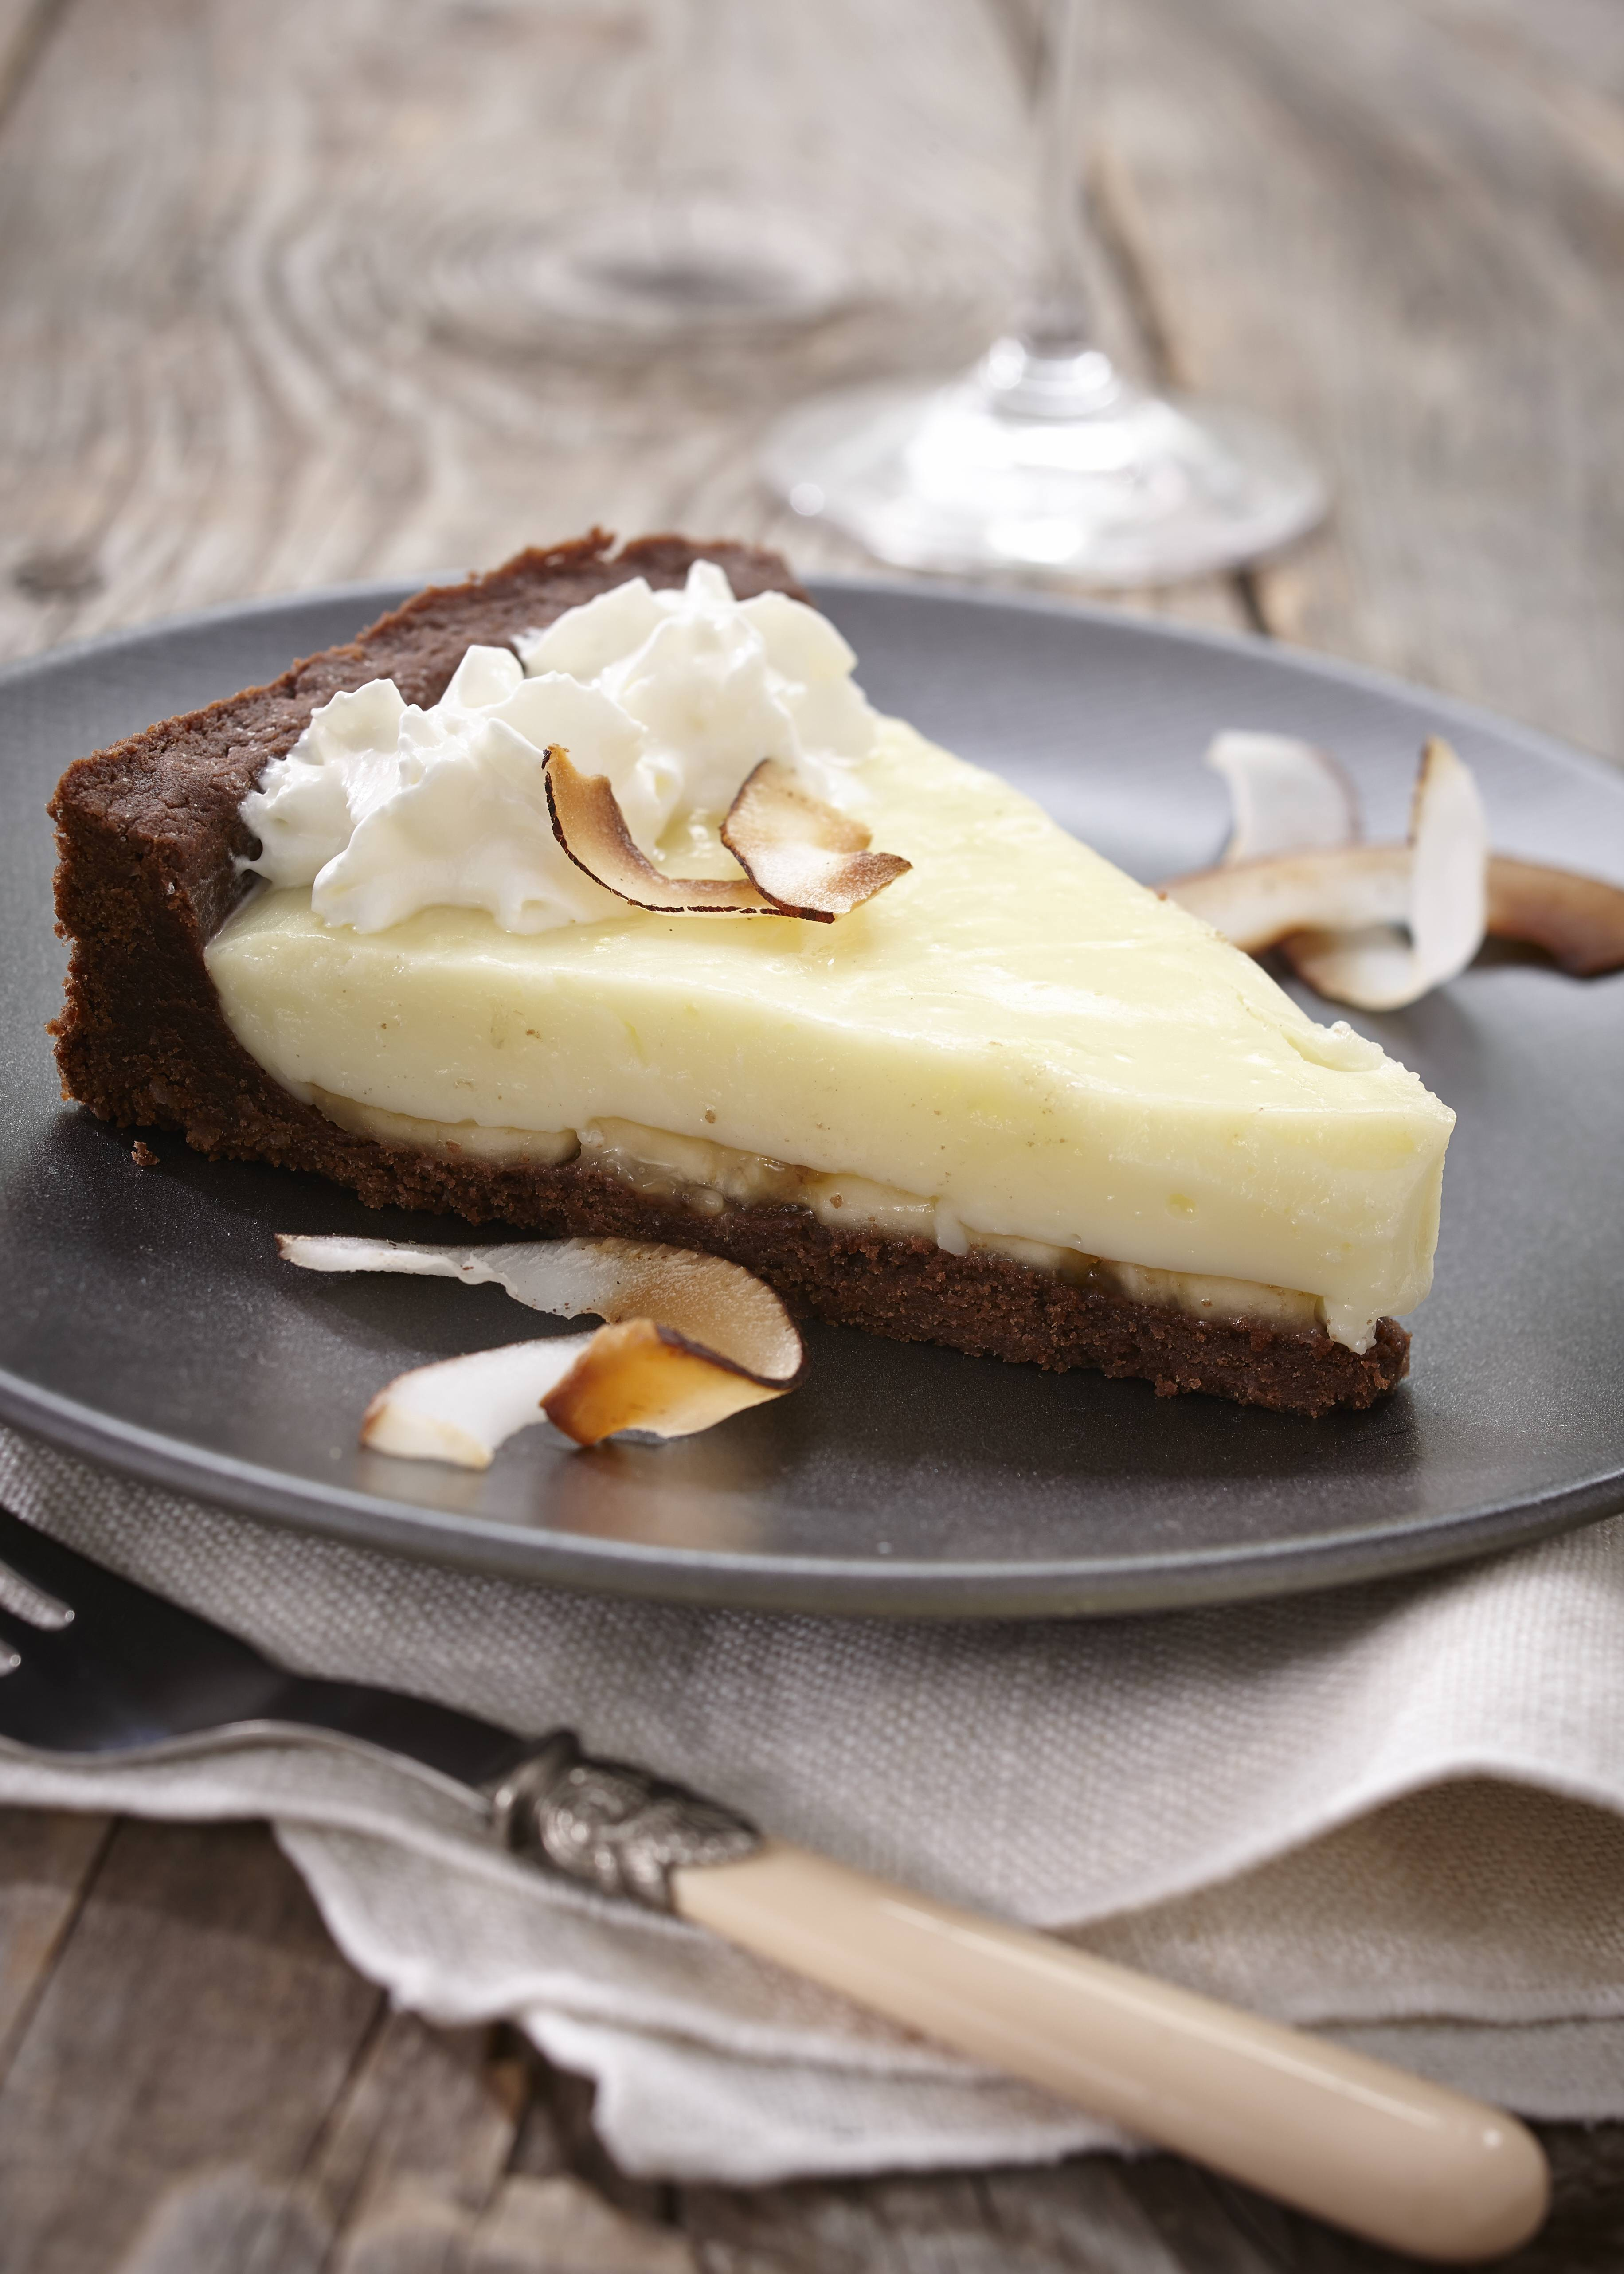 Eat This: The Ultimate Chocolate Coconut Banana Cream Pie